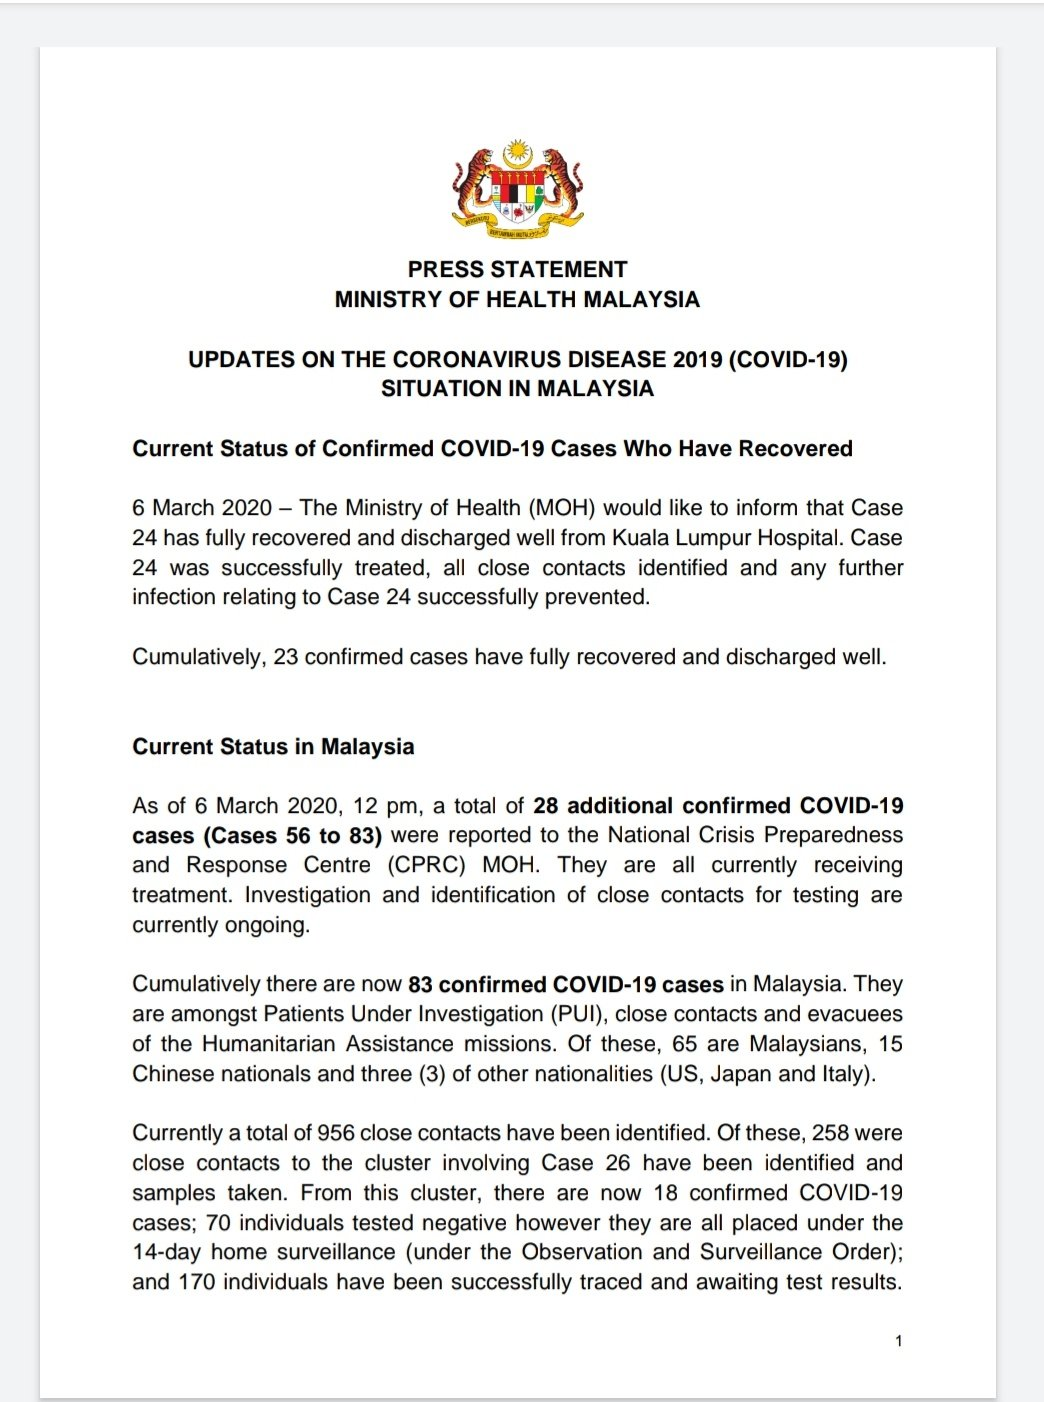 Kkmalaysia On Twitter Update On The Covidー19 Current Situation In Malaysia Mar 6 2020 28 New Cases Were Reported In Malaysia Today The Total Number Of Cases In Malaysia So Far Is